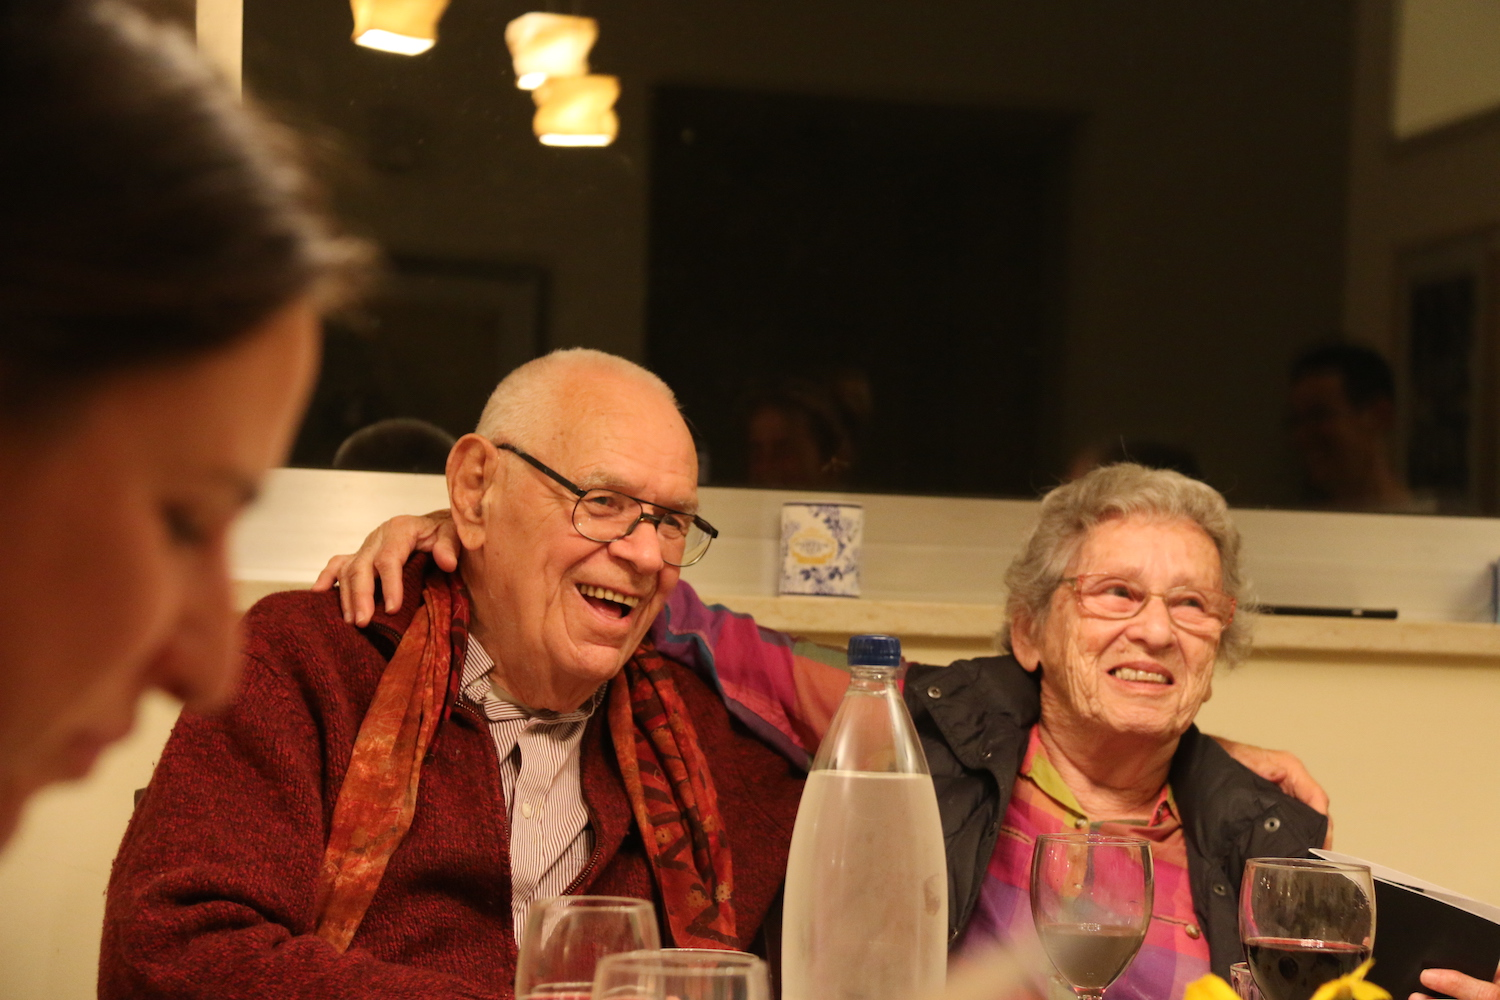 Reuven and Dafna Kaminer. (Courtesy of the Kaminer family)